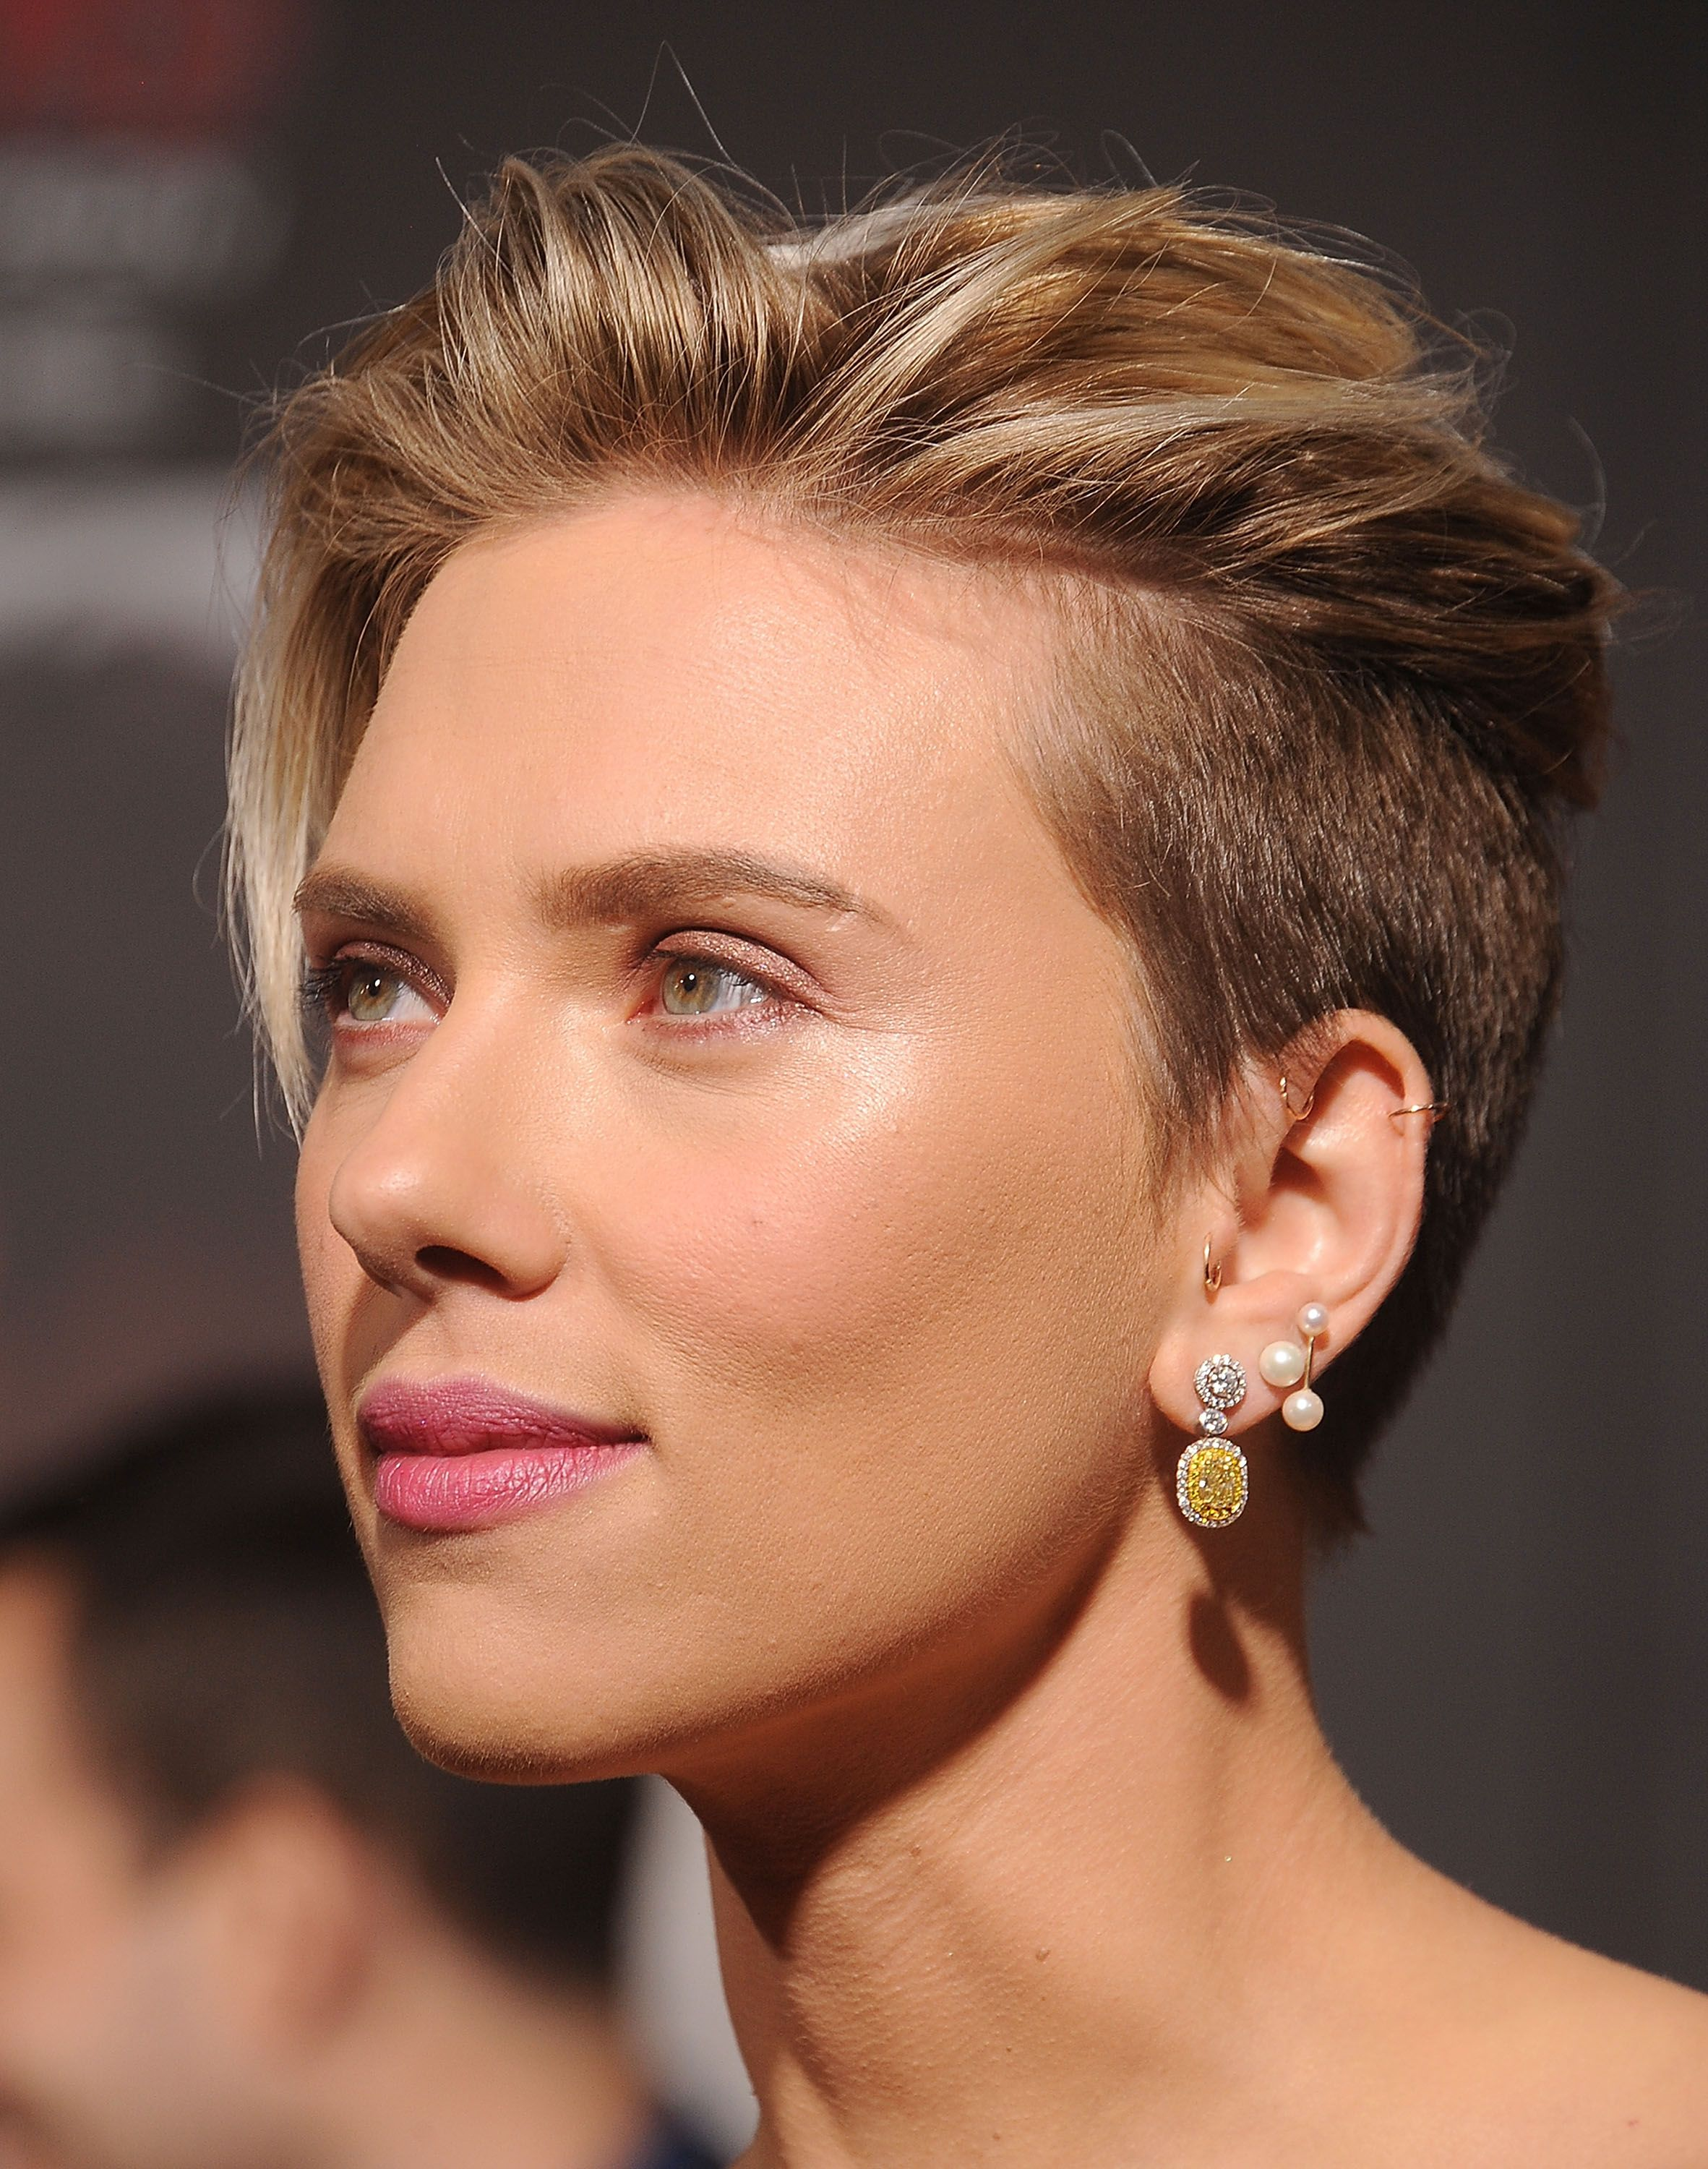 25 Famous Women Whose Hair Should Really Get MoreAttention